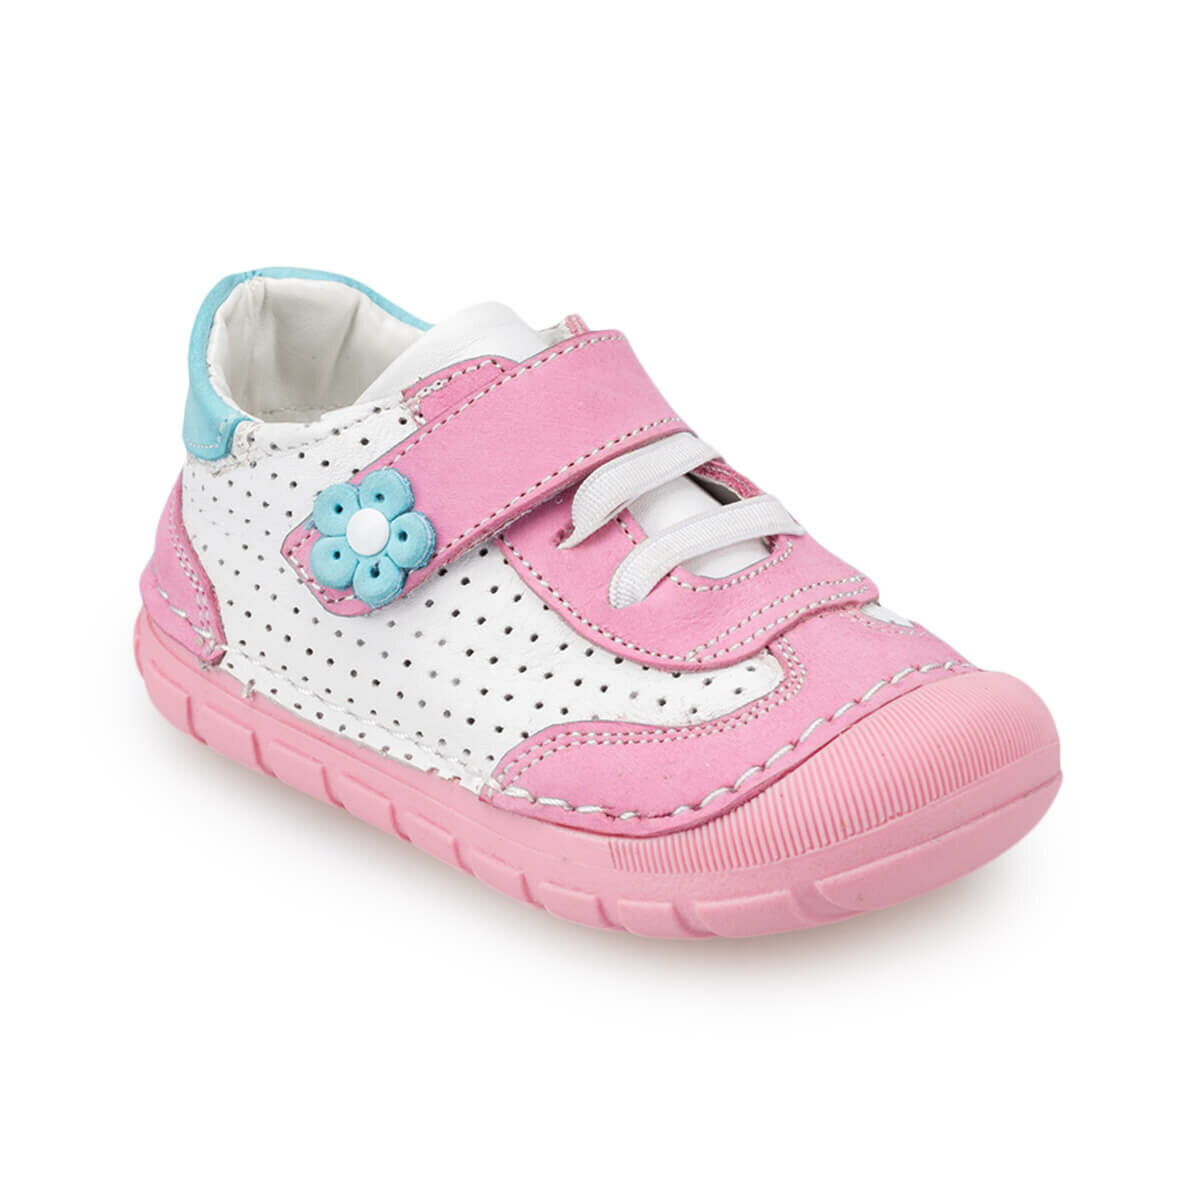 FLO 91.511386.I Pink Female Child Sneaker Shoes Polaris